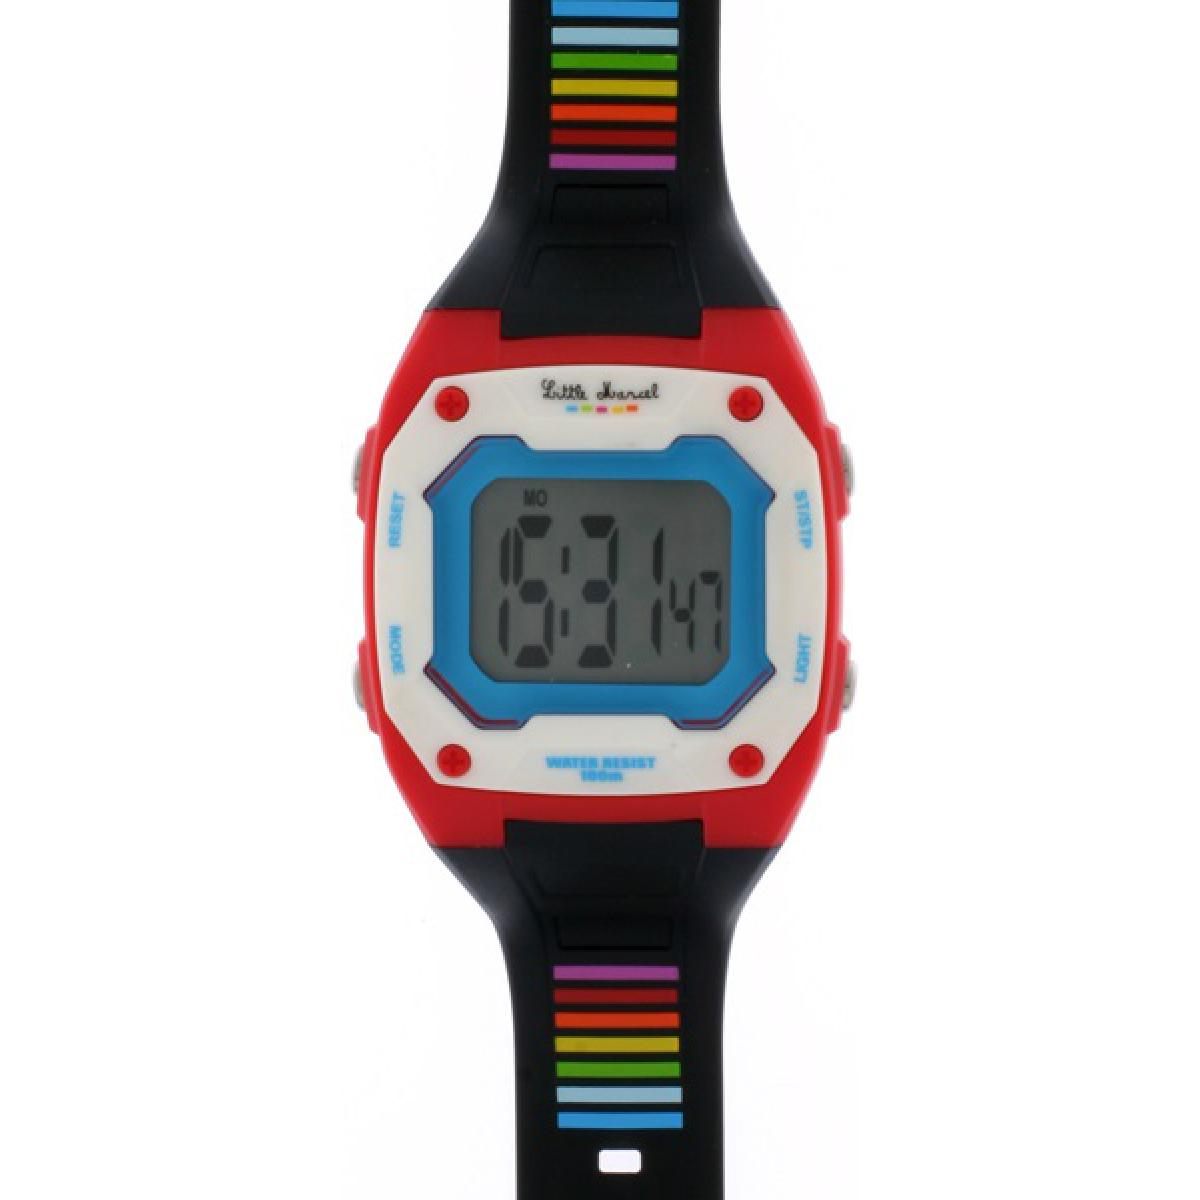 Montre Little Marcel LM17RDPU - Montre Chrono Multicolore